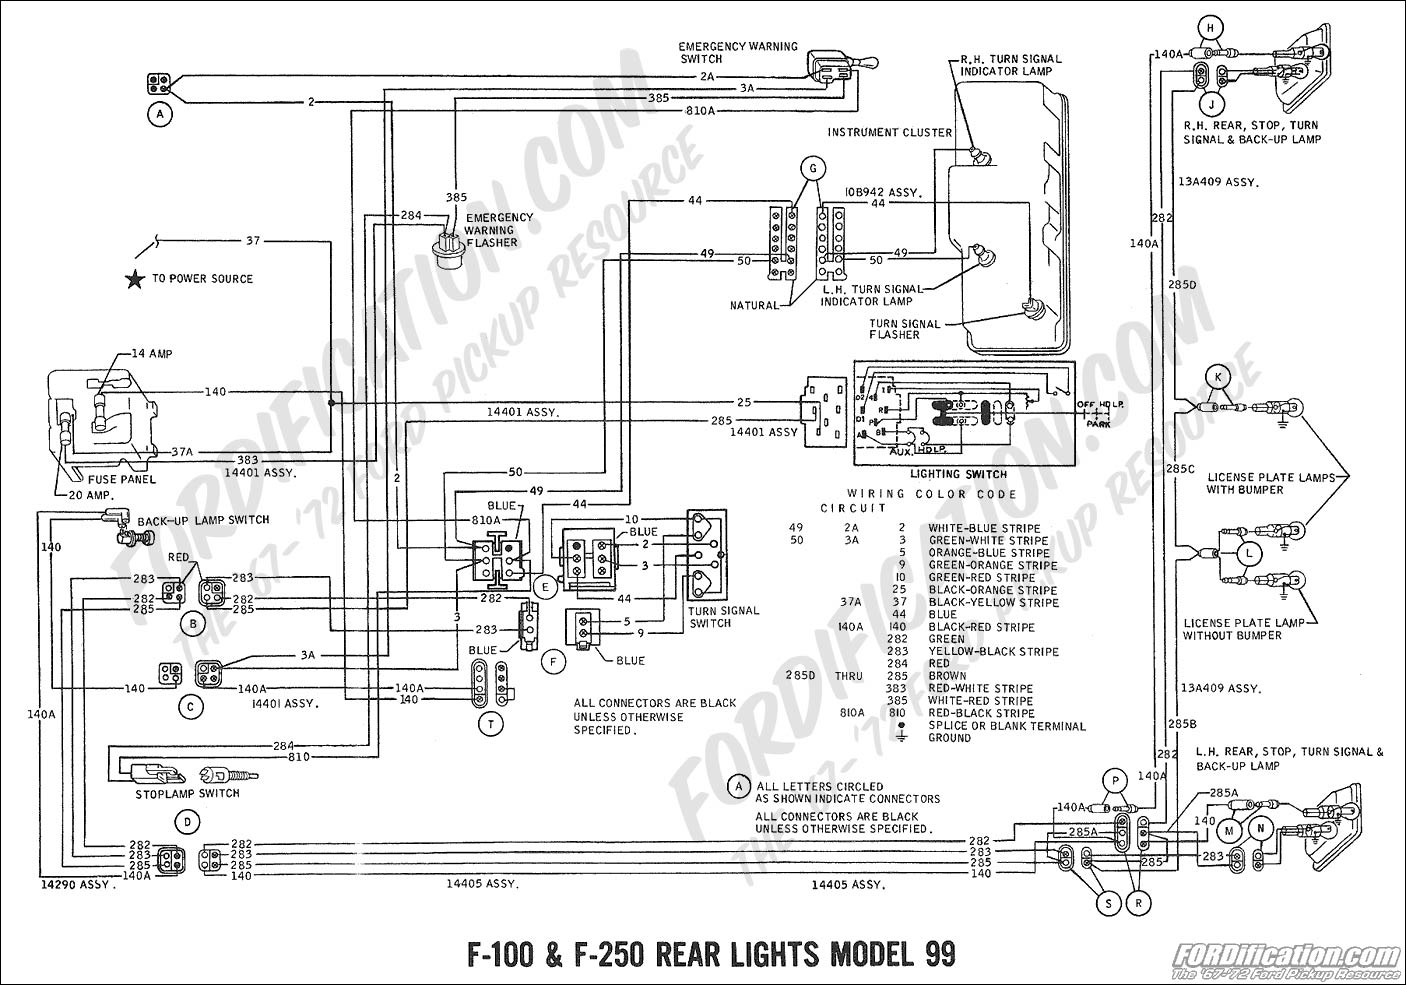 Index6 likewise 1afy4 Diesel Engine Wont Shut Off Truck additionally Dodge Durango 5 7 2004 Specs And Images besides Dodge 5 9 Engine Torque Specs likewise Jeep Grand Cherokee 1999 2004 Fuse Box Diagram 397760. on 97 dodge ram 1500 transmission wiring diagram